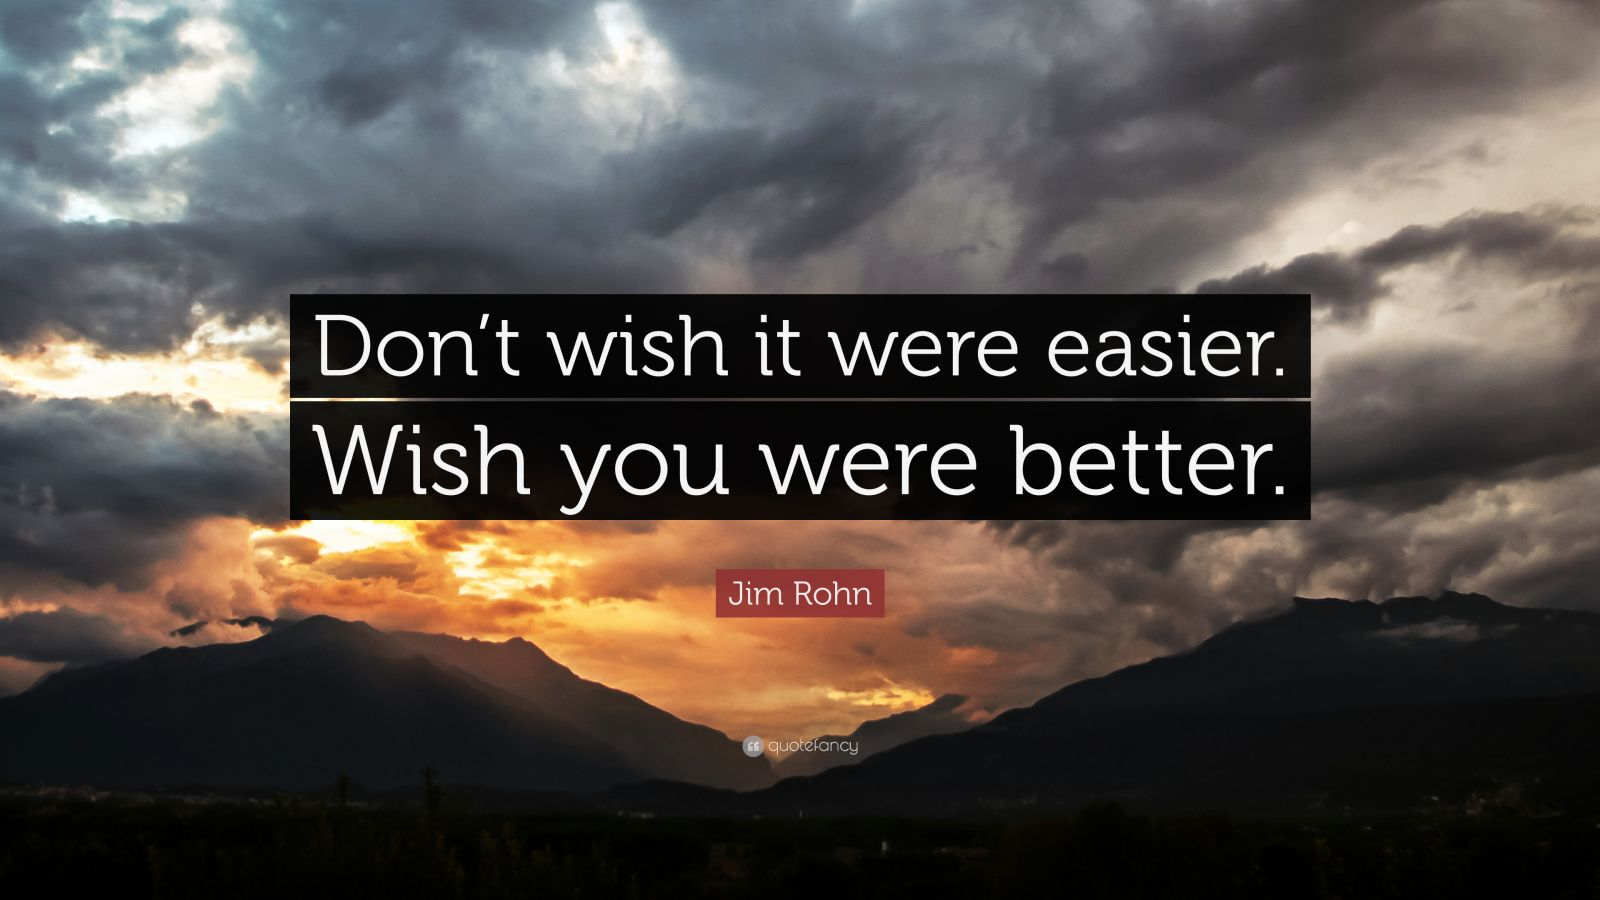 Steve Jobs Motivational Quotes Wallpaper Jim Rohn Quote Don T Wish It Were Easier Wish You Were